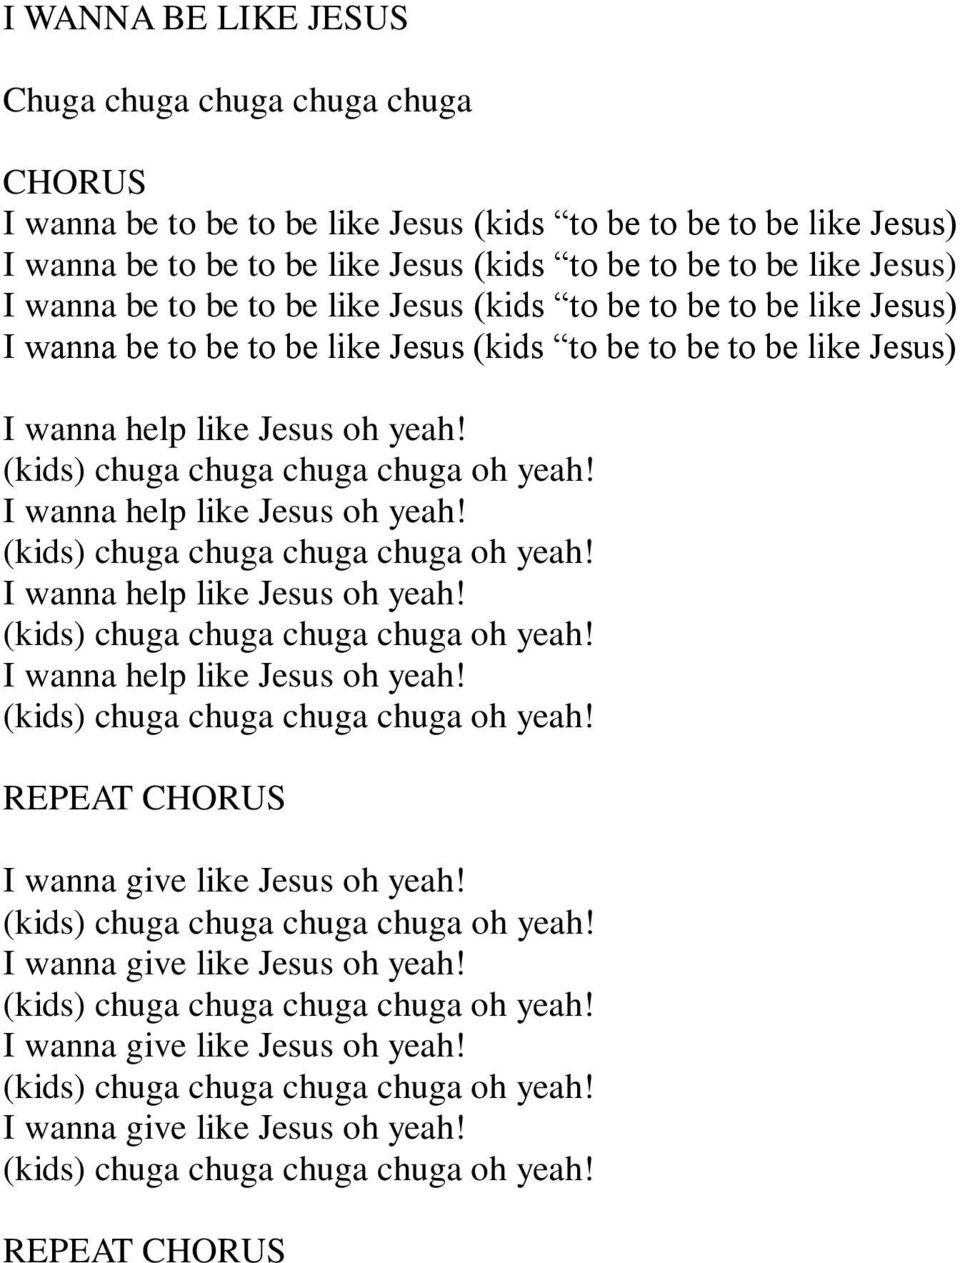 (kids) chuga chuga chuga chuga oh yeah! I wanna help like Jesus oh yeah! (kids) chuga chuga chuga chuga oh yeah! I wanna help like Jesus oh yeah! (kids) chuga chuga chuga chuga oh yeah! I wanna help like Jesus oh yeah! (kids) chuga chuga chuga chuga oh yeah! I wanna give like Jesus oh yeah!